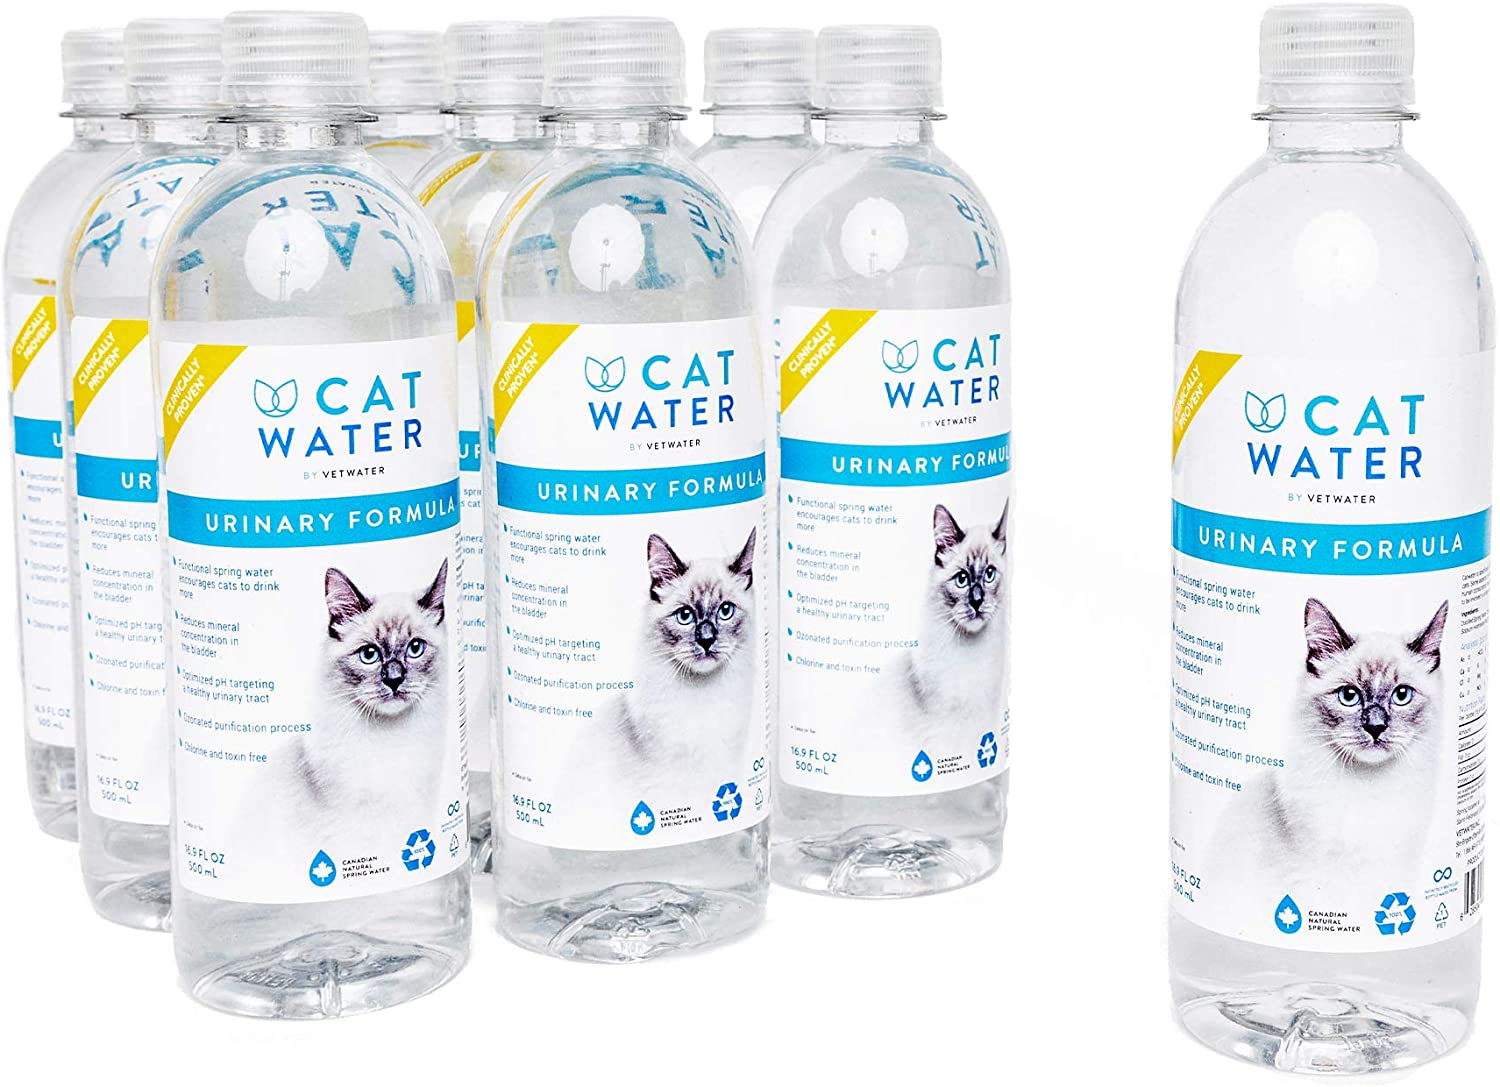 CATWATER by VETWATER | ph-Balanced and Mineral-Free Cat Water | Clinically Proven Urinary Formula | Helps Prevent Cat Urinary Issues, FLUTD| 16.9 oz, 12-Pack